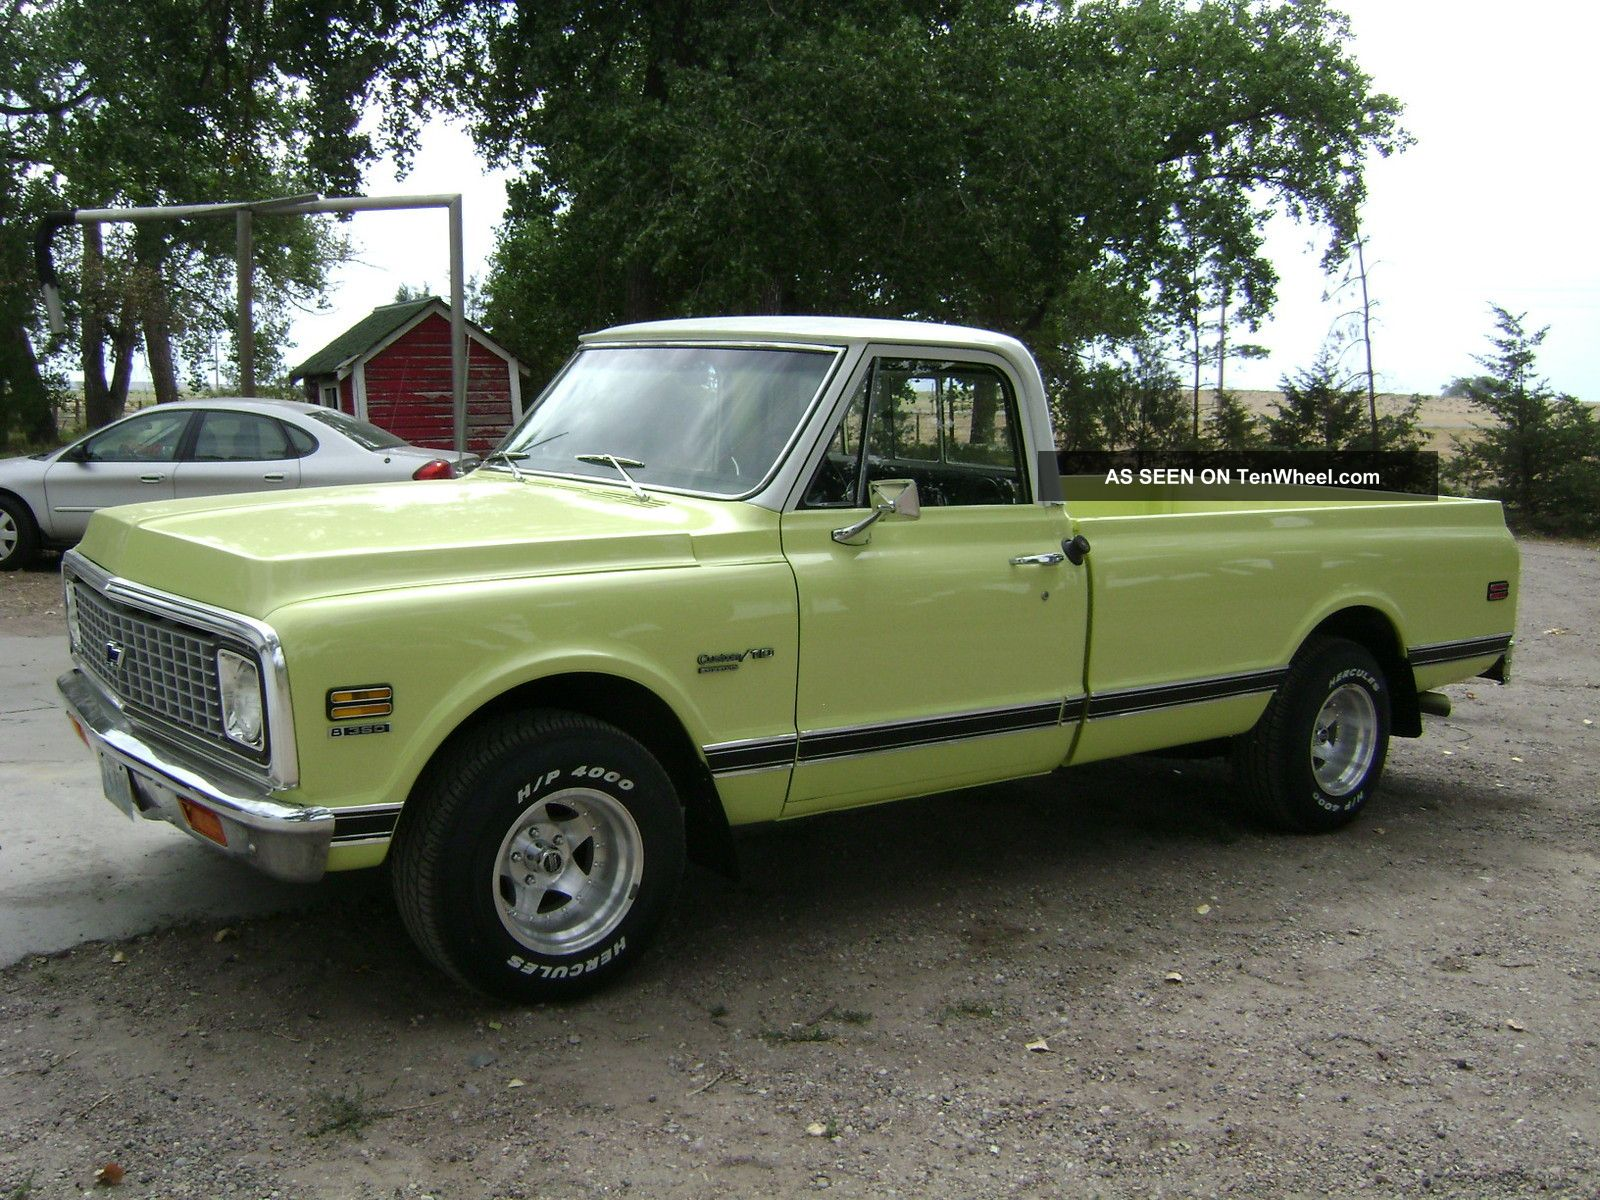 1972 Chevrolet Pickup Truck Chevy 454 Engine Starter Wiring Diagram Free Picture